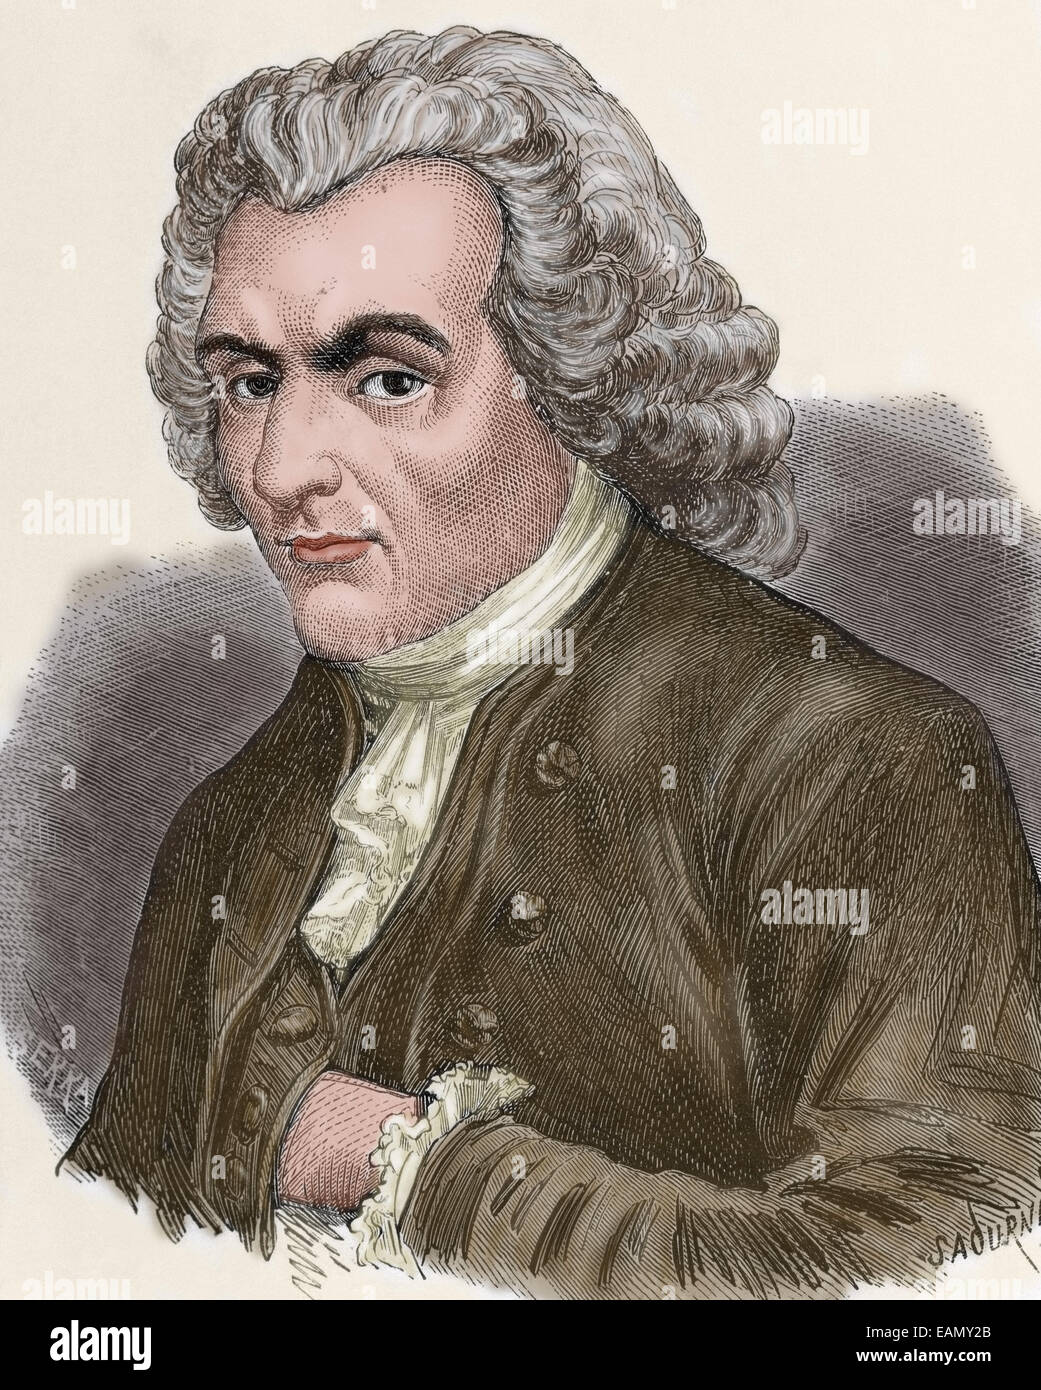 Jean-Jacques Rousseau (1712-1778). Genevan philosopher, writer, and composer. Portrait. Engraving by Sadurni. Colored. - Stock Image